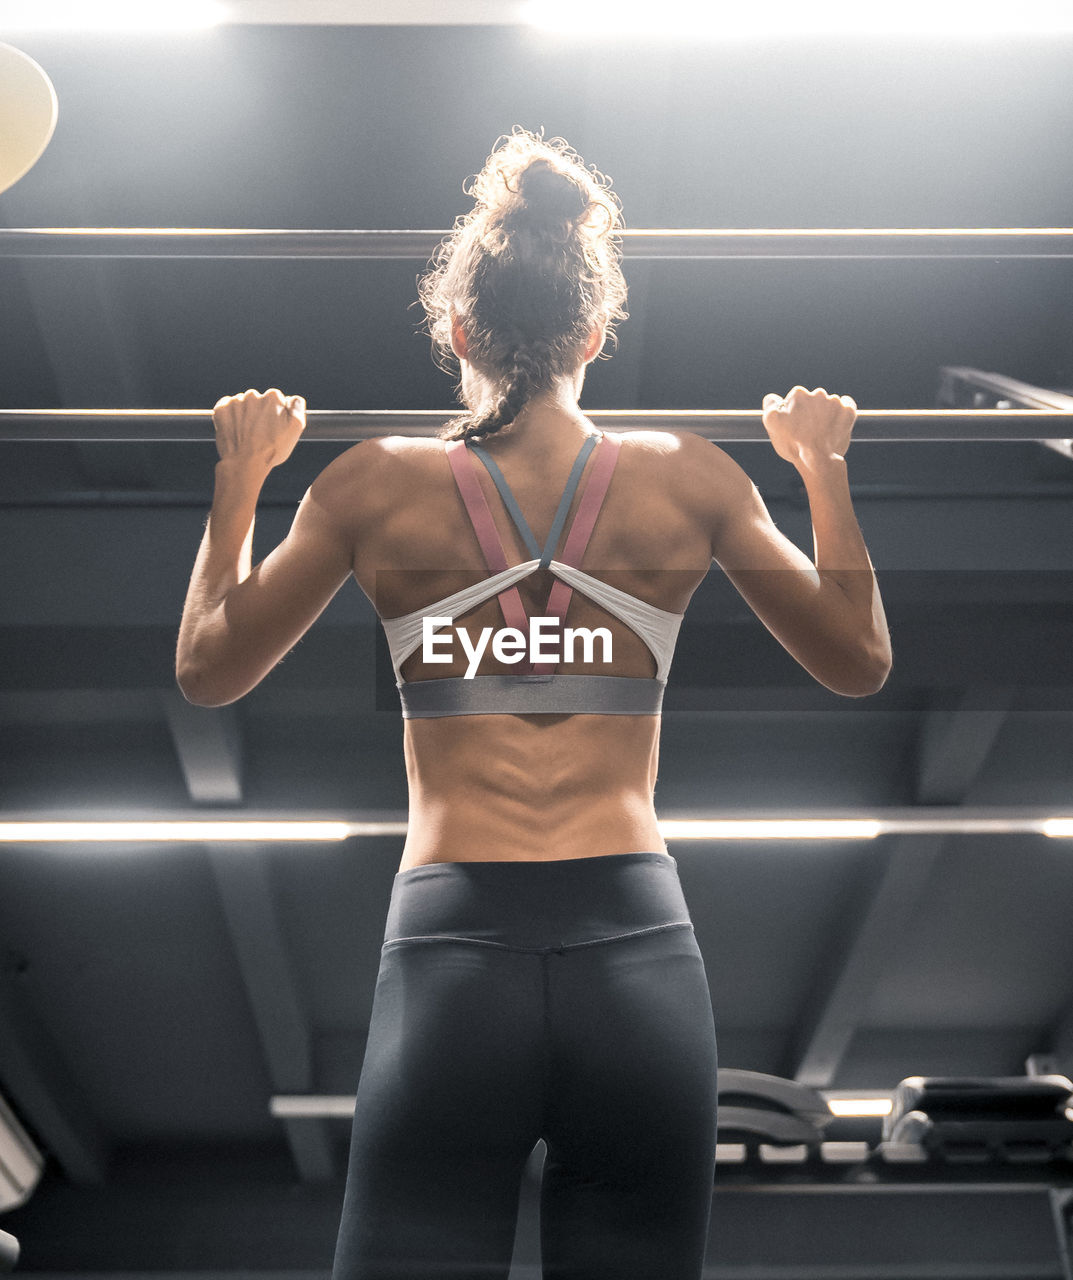 rear view, one person, clothing, lifestyles, three quarter length, sports clothing, healthy lifestyle, real people, sport, exercising, adult, muscular build, indoors, young adult, standing, leisure activity, young women, determination, women, hairstyle, human arm, beautiful woman, body part, arms raised